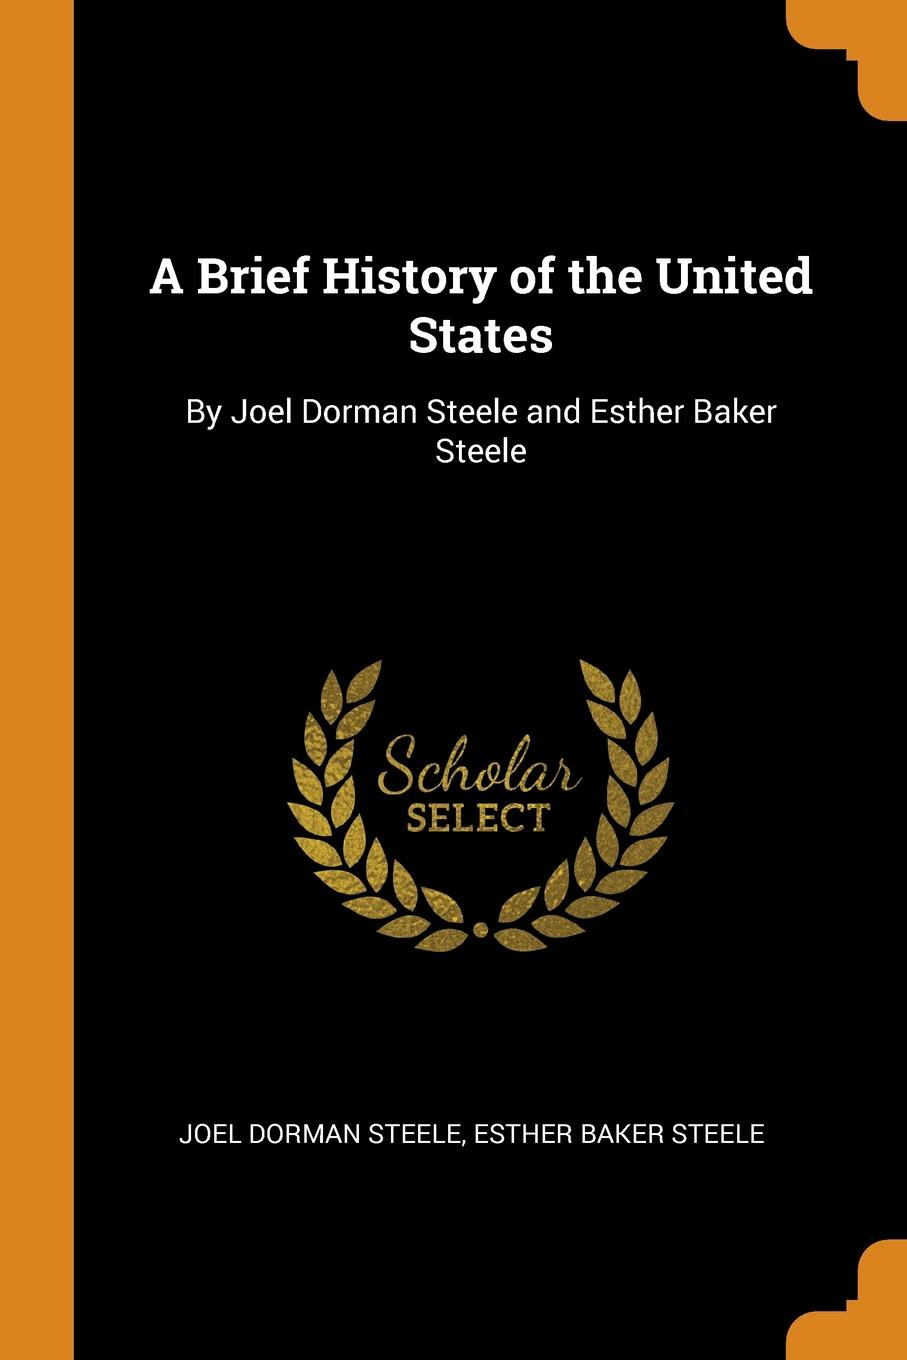 цены на Joel Dorman Steele, Esther Baker Steele A Brief History of the United States. By Joel Dorman Steele and Esther Baker Steele  в интернет-магазинах